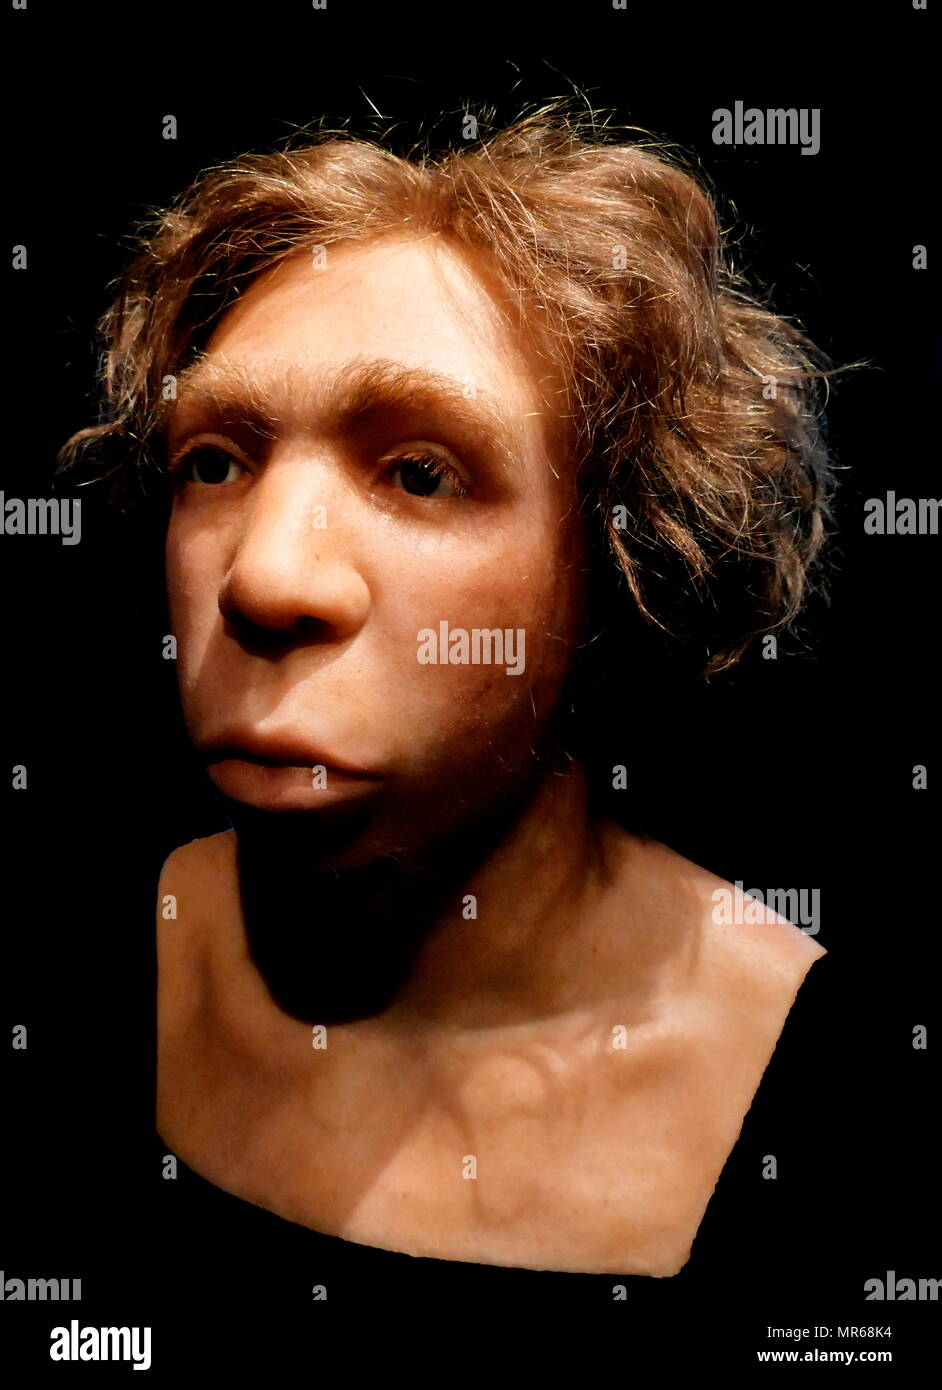 Reconstructed bust of a Neanderthal Man from Le Moustier, France, 45,000 BC. - Stock Image